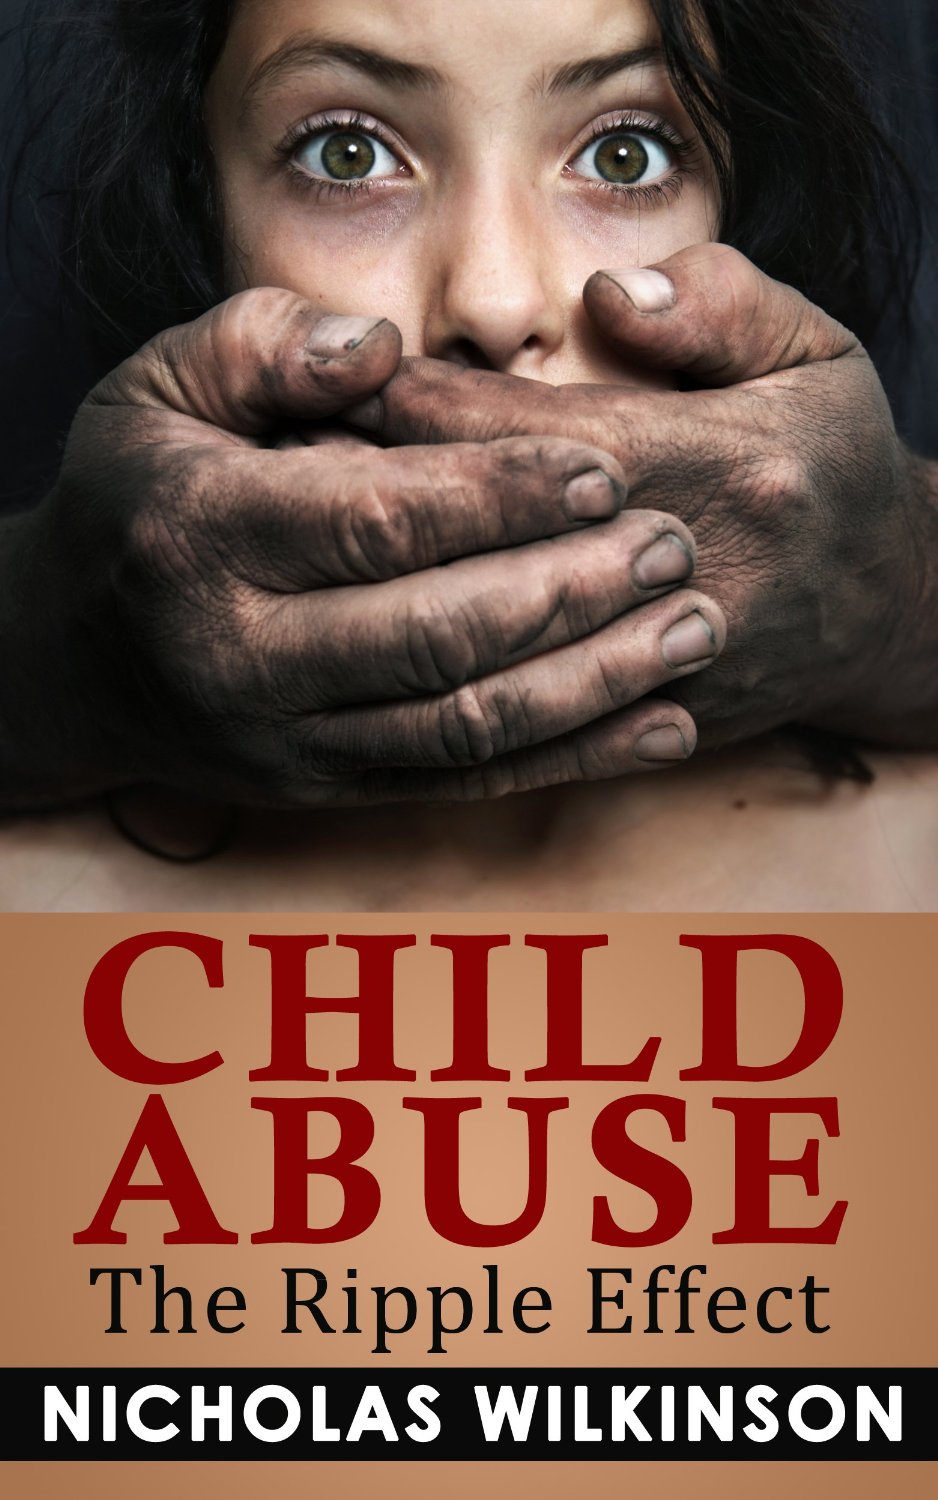 child abuse 27 Neuropsychological studies suggest an association between child abuse and  deficits in iq, memory, executive  psychoneuroendocrinology 27, 231–244.